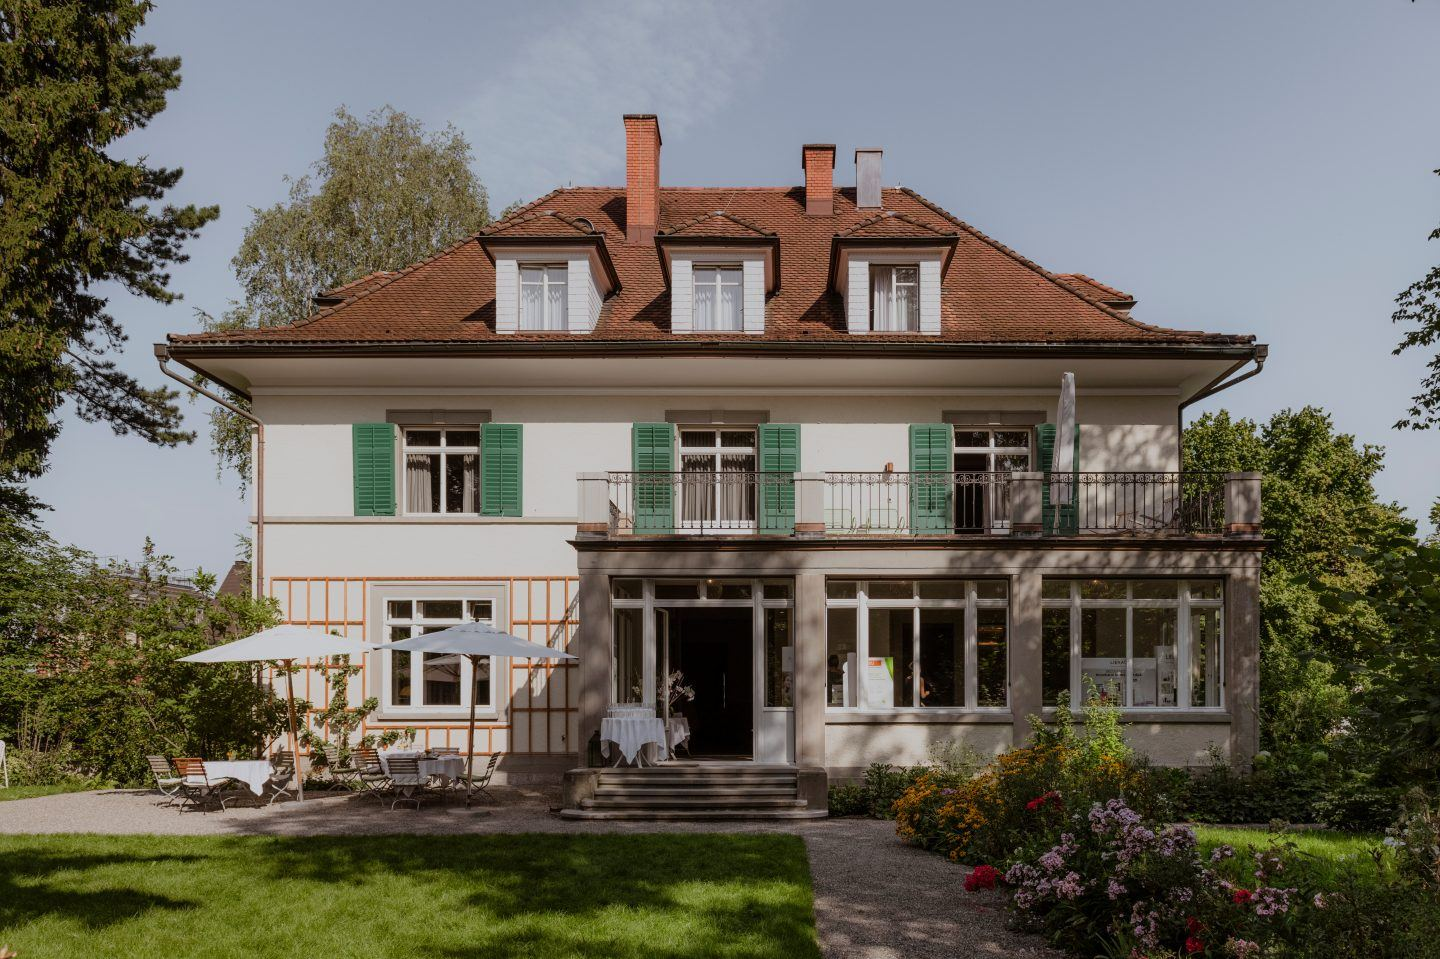 IGNANT-Travel-Zurich-Sleep-Signau-House-14